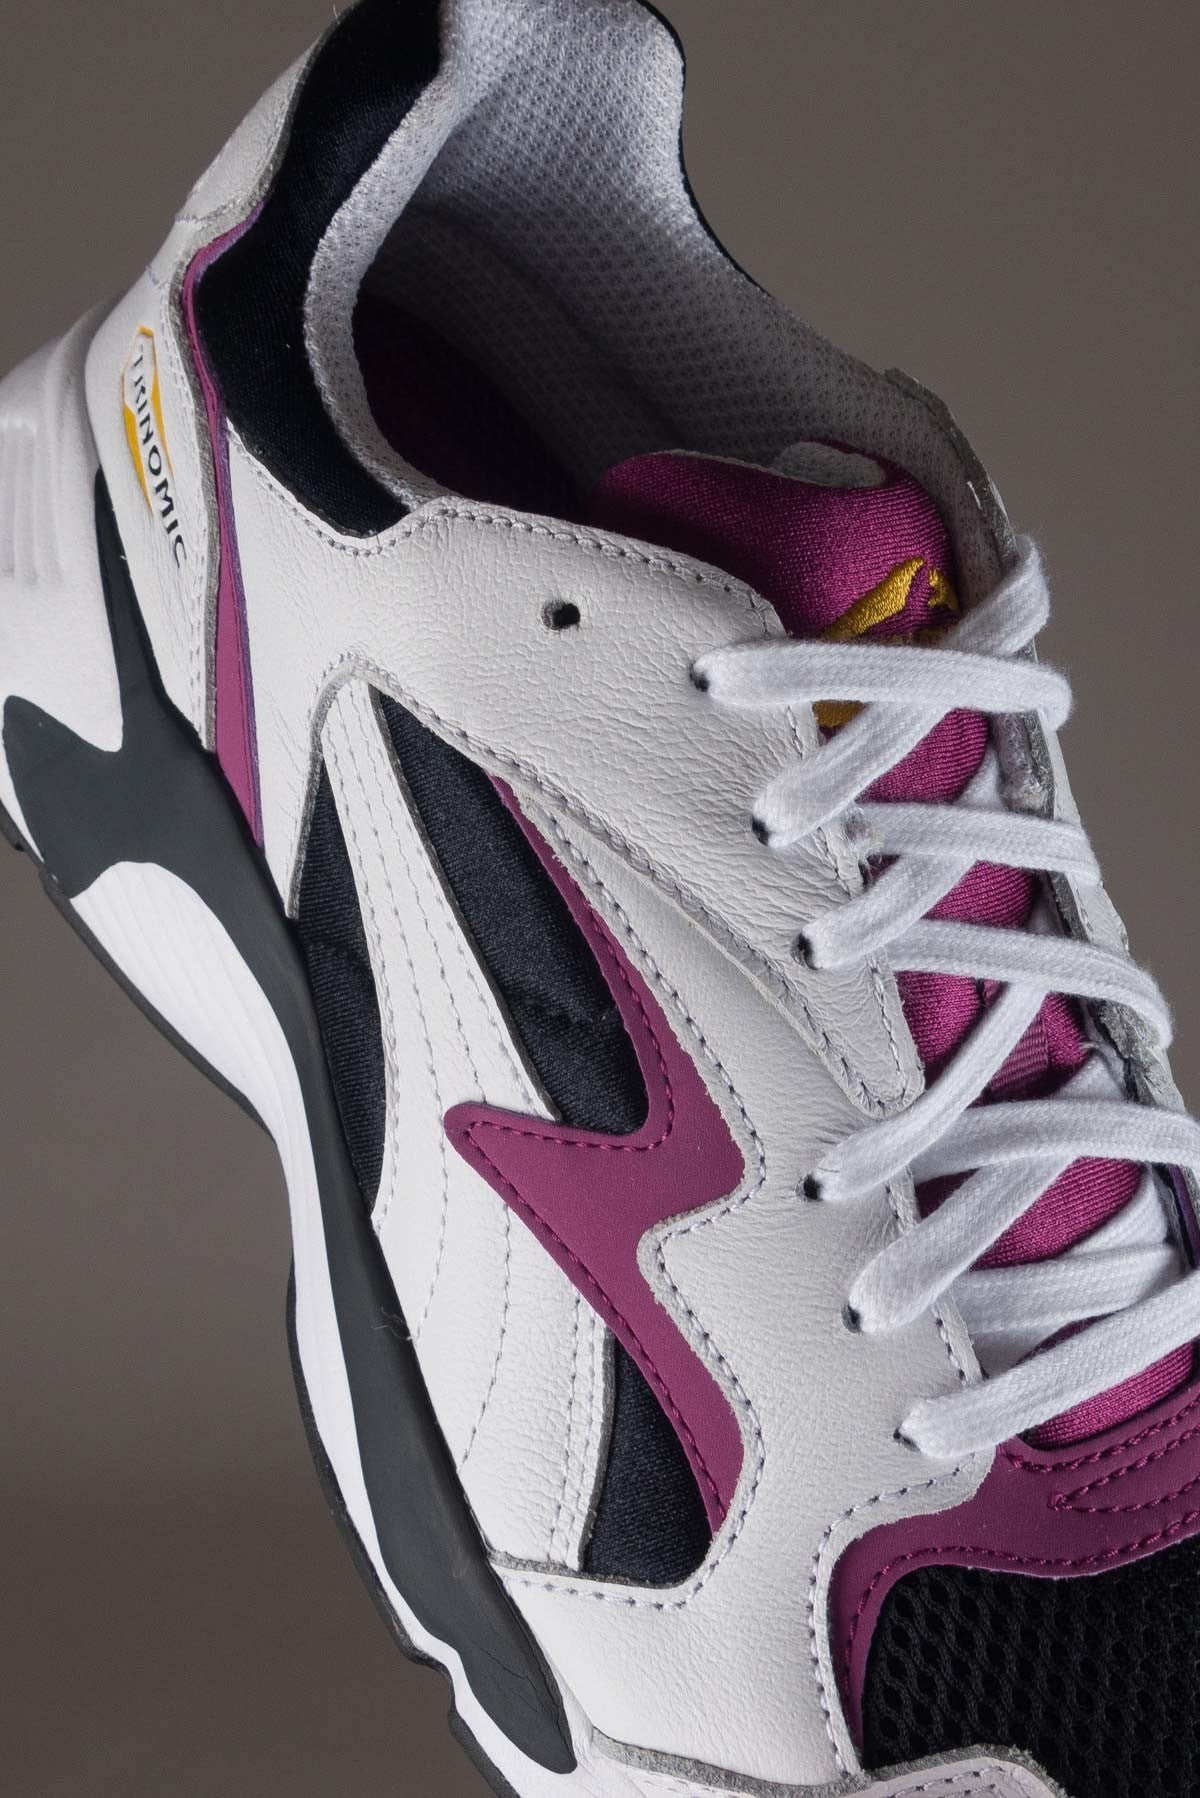 841ceb36f242 ... Puma Black Puma White Grape Kiss Mineral Yellow